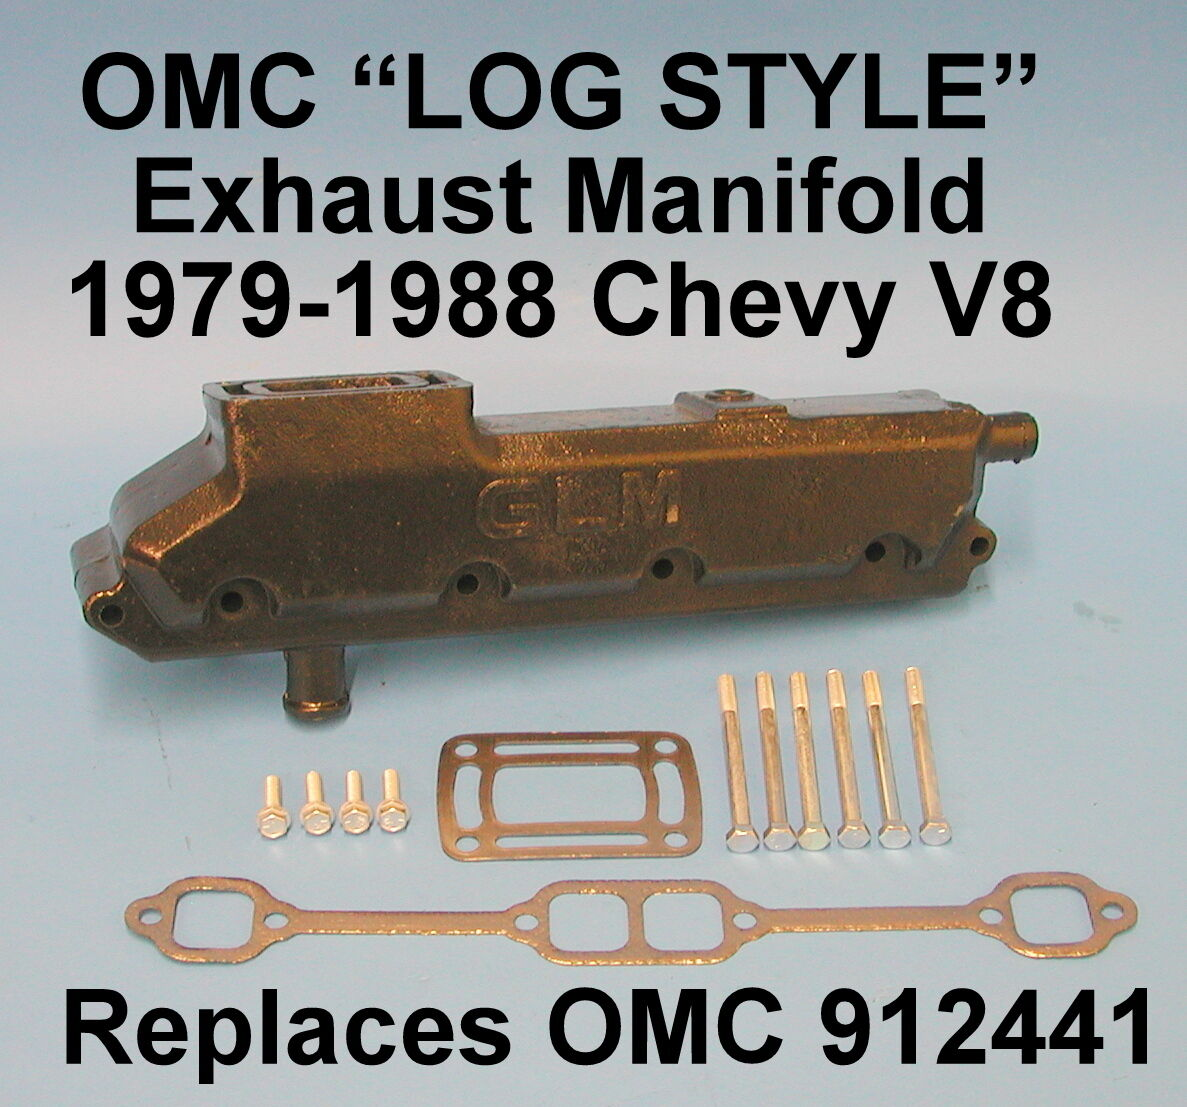 OMC CHEVY V8 305 350 LOG EXHAUST MANIFOLD 1979-1988 912441 STARBOARD REAR ELBOW